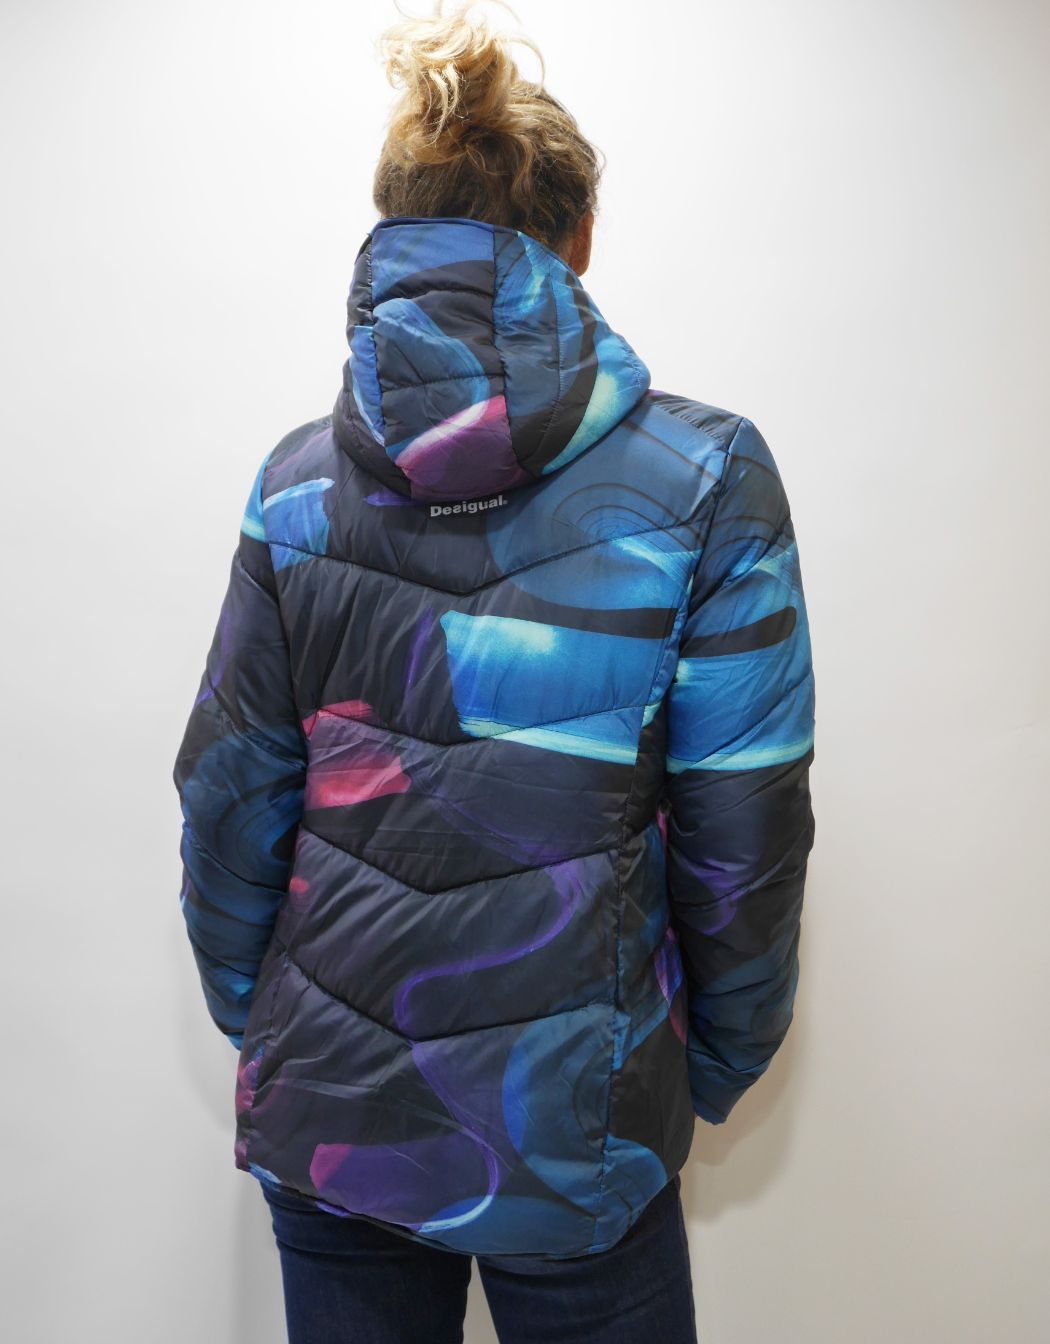 PADDED JACKET ARTY 19WOEW03 5127 4